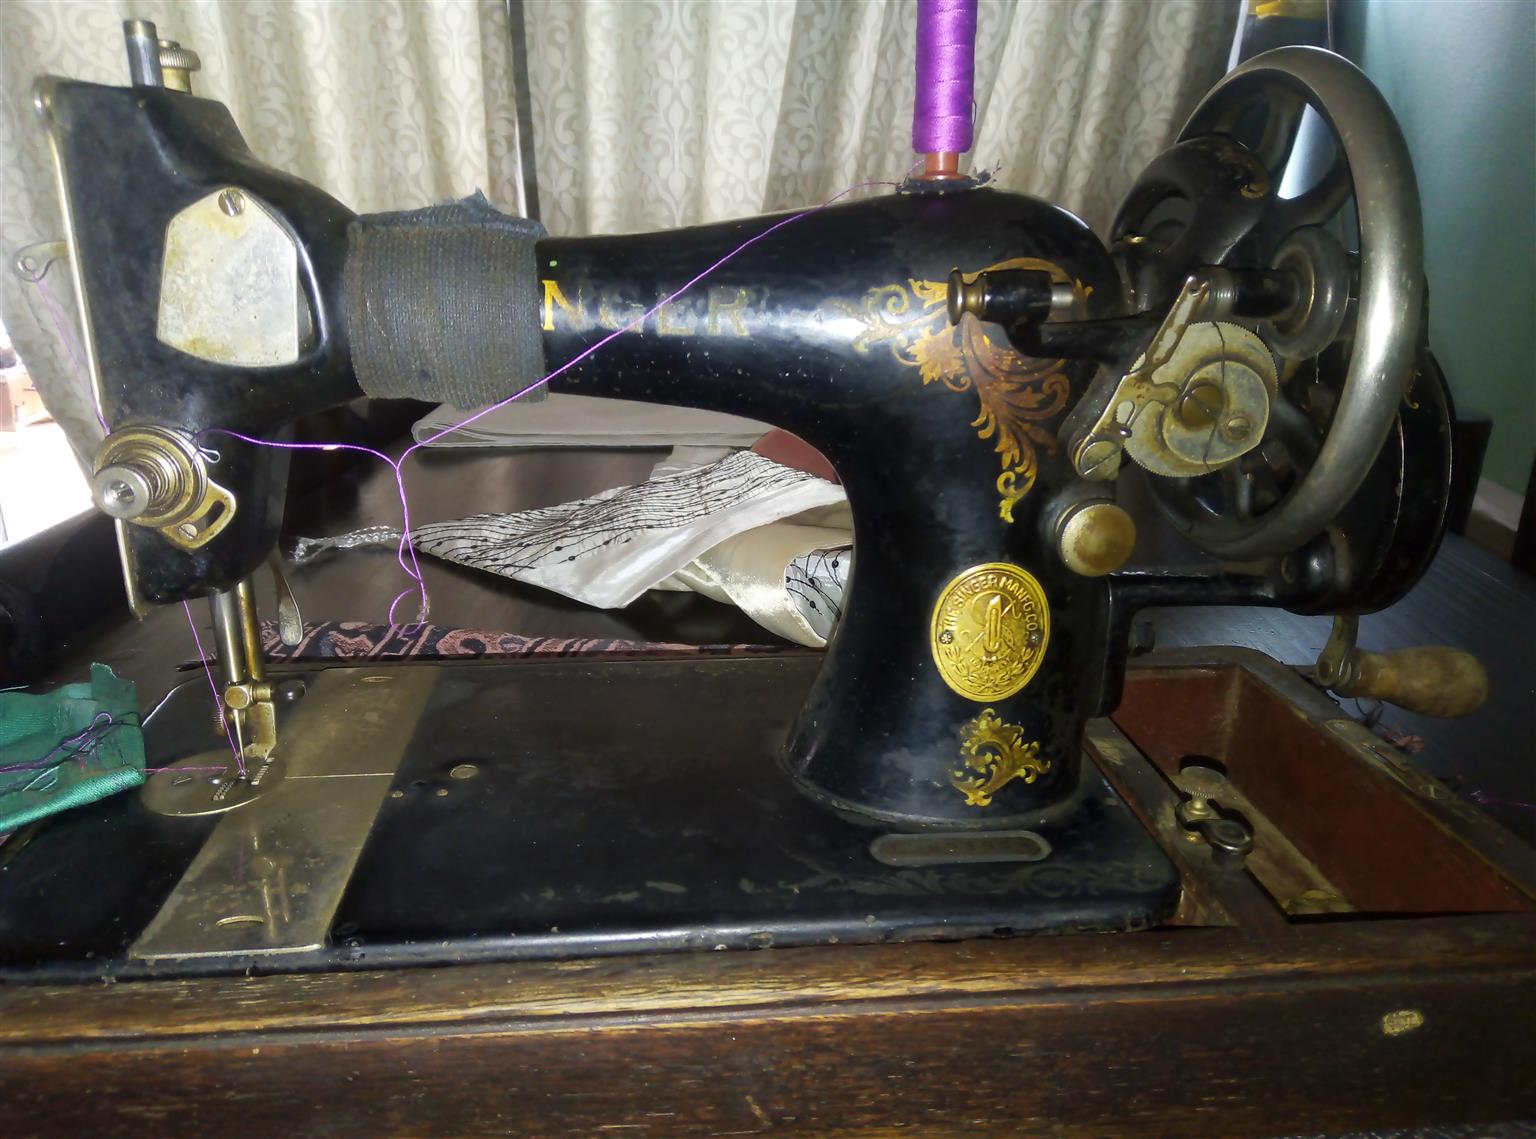 Singer hand sewing machine in working order l can test the machine for u